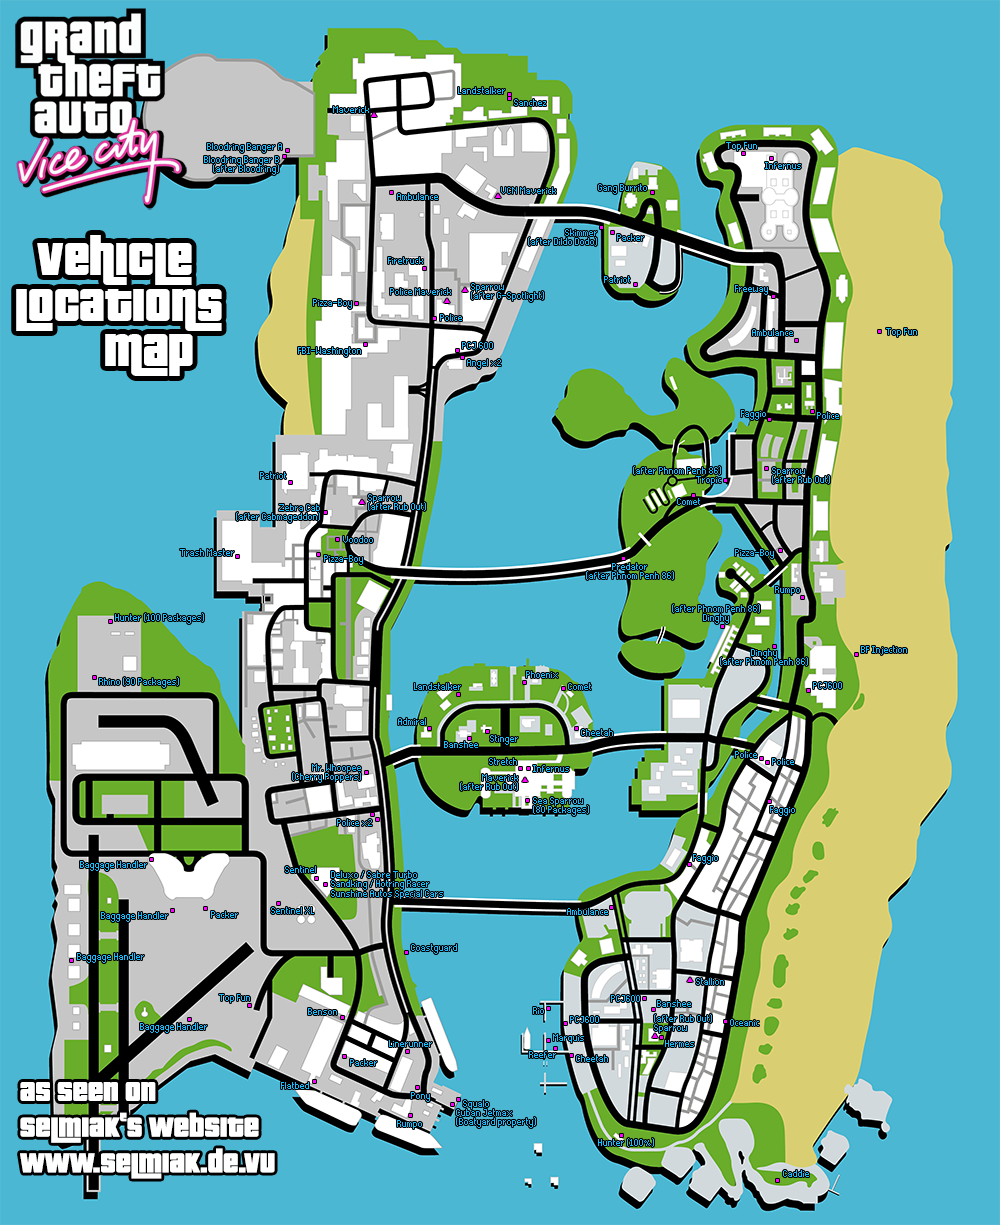 GTA Vice City Vehicle Locations Car List (Maps) Cars Boats